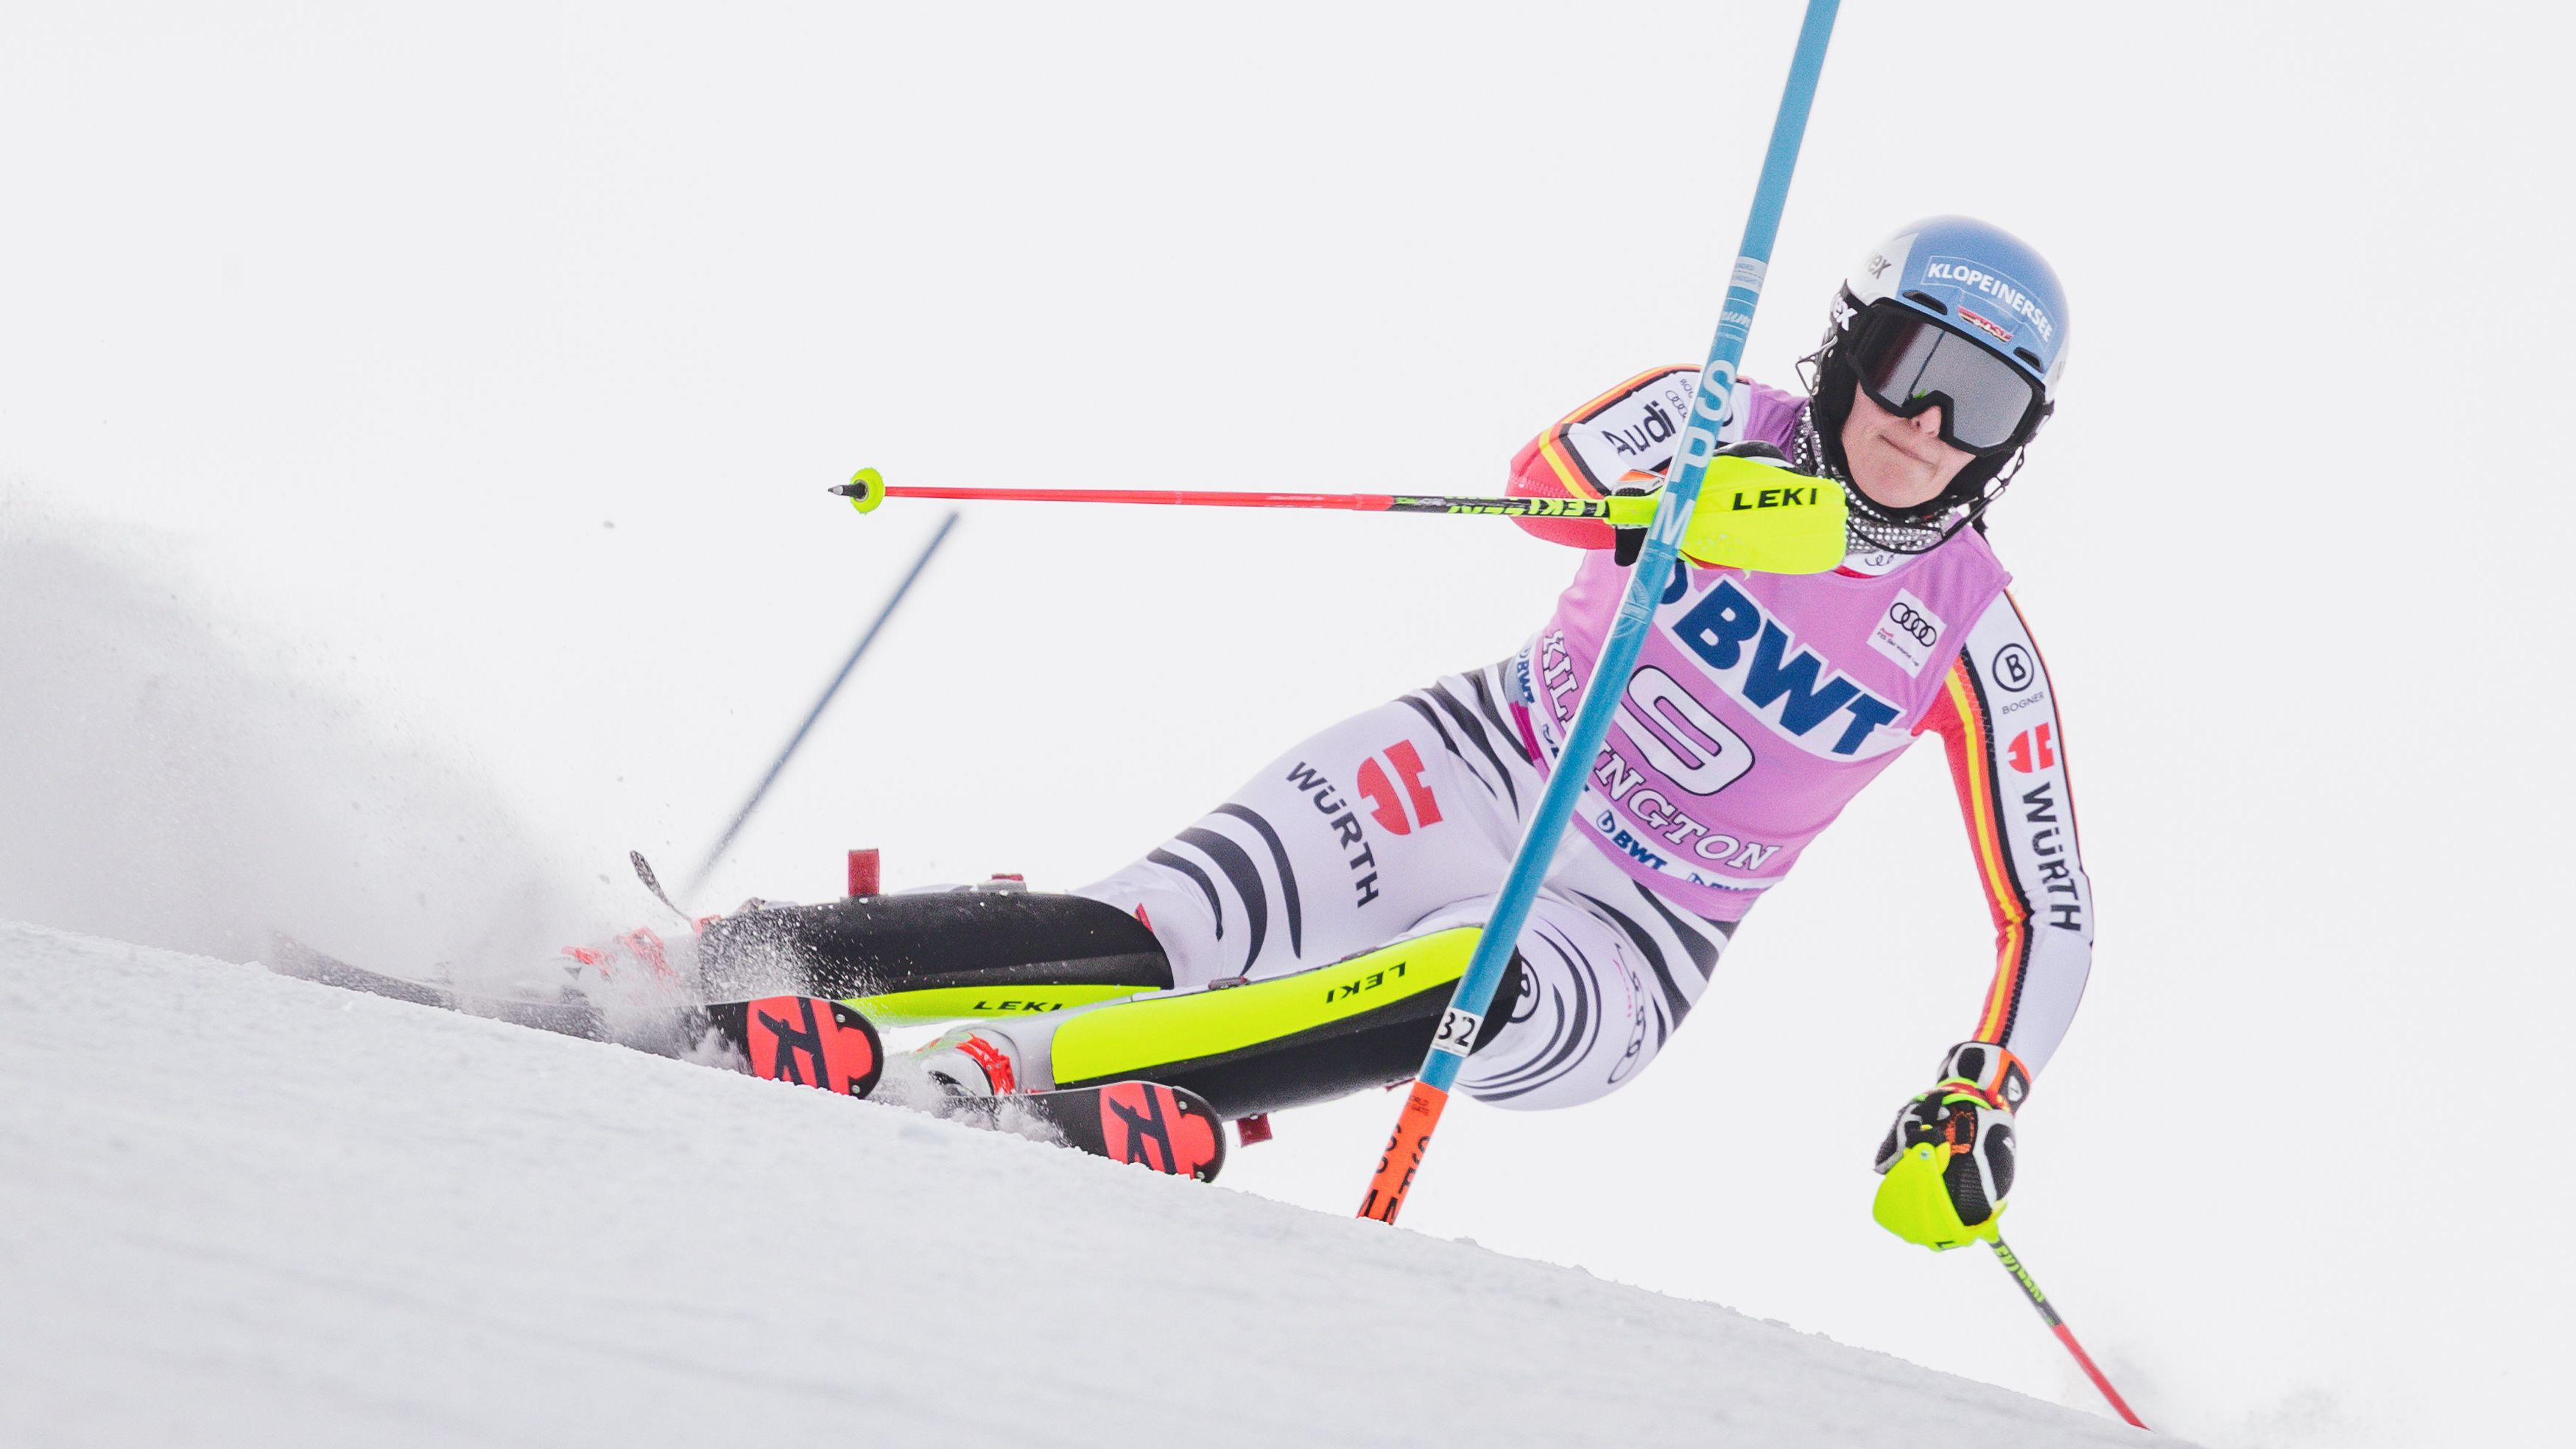 Christina Ackermann in Killington